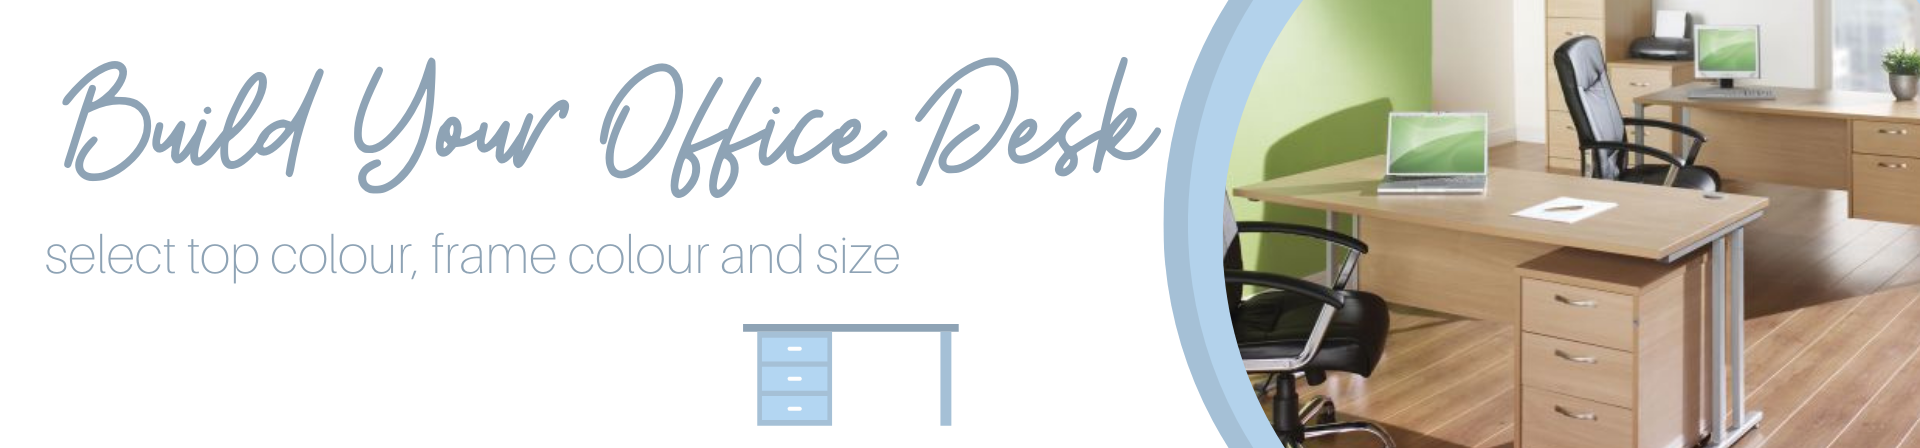 Build Your Own Desk